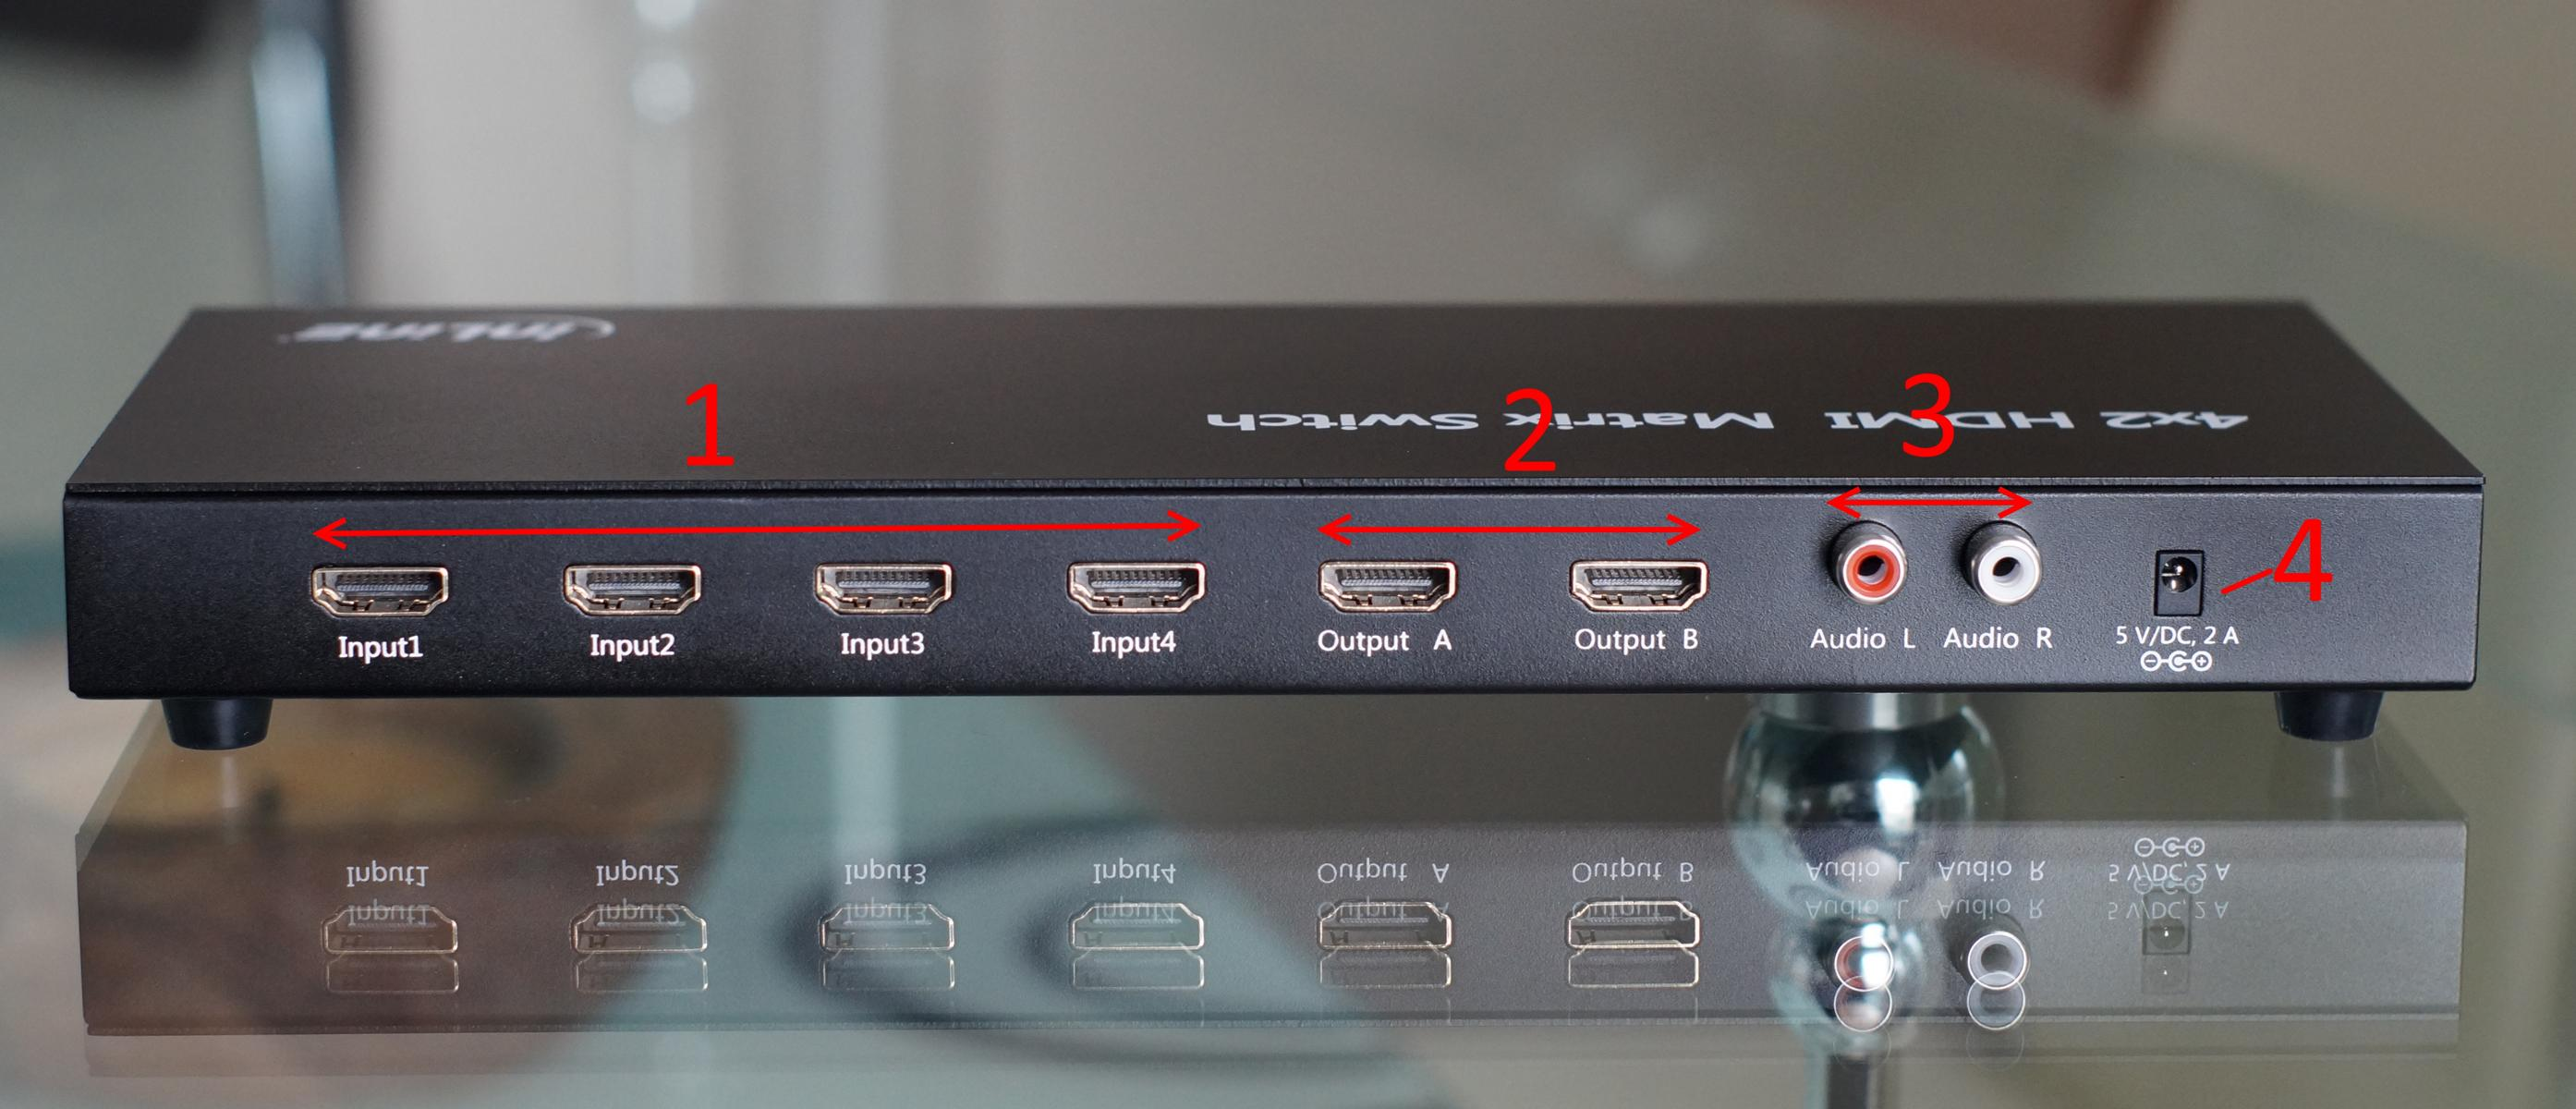 InLine - HDMI-MATRIX-SWITCH im Praxistest